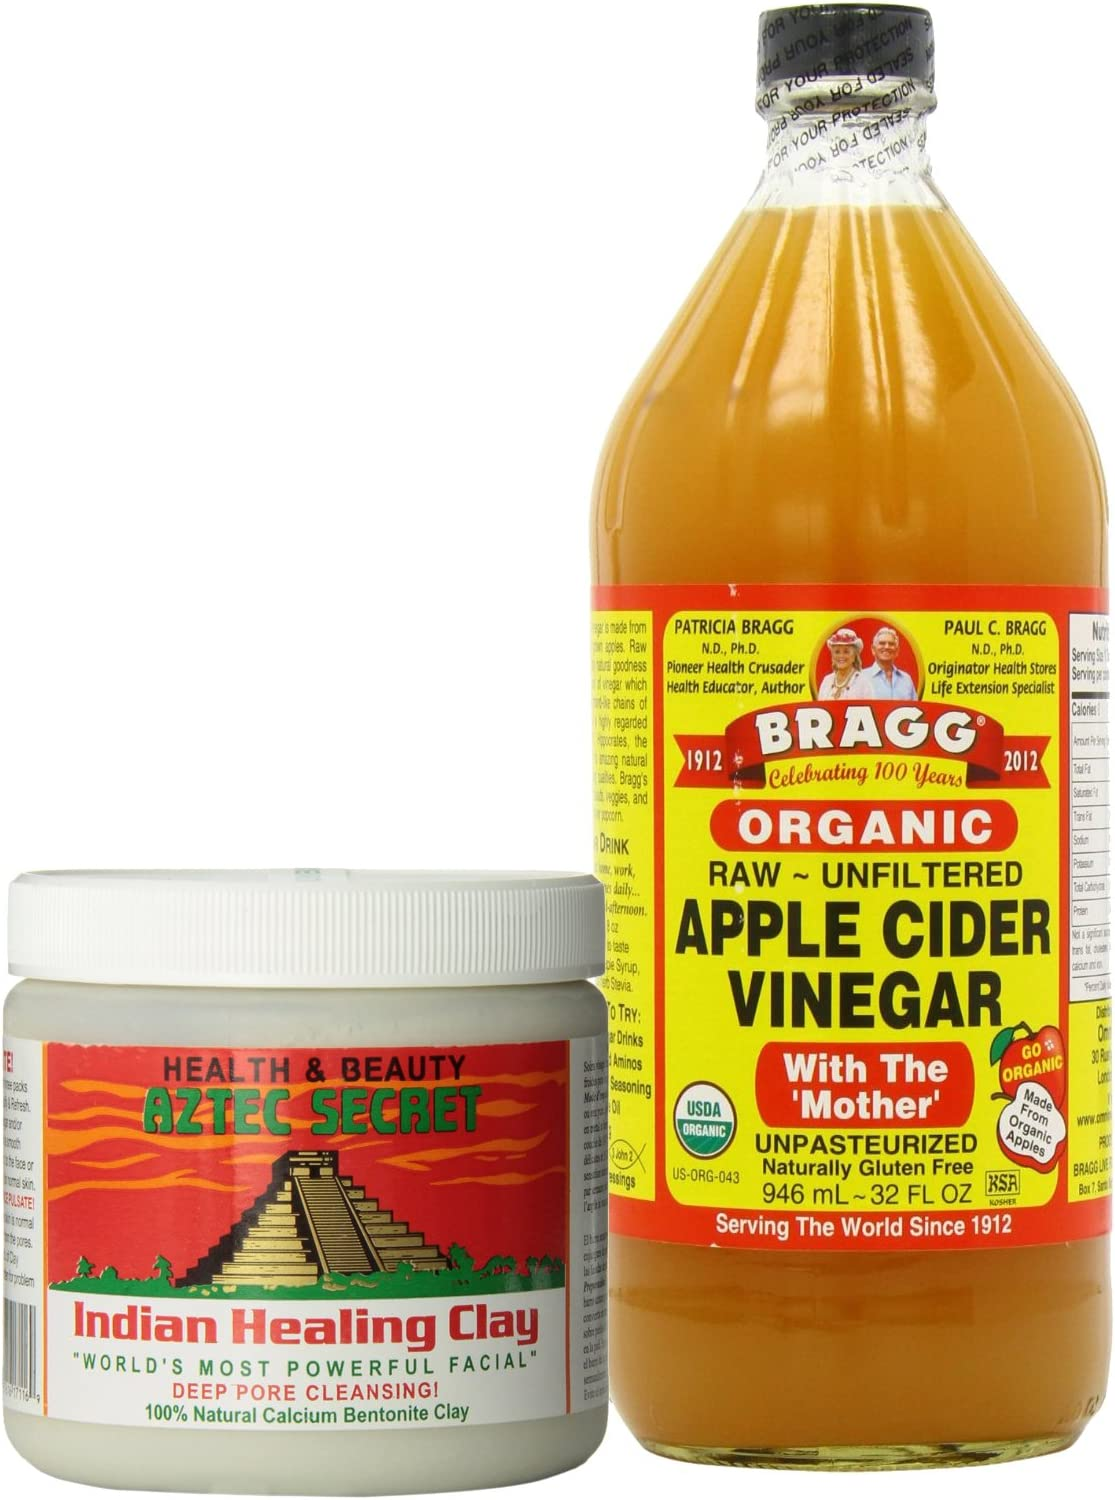 Aztec Secret Indian Healing Clay Deep Pore Cleansing and Bragg Apple Cider Vinegar Organic Raw Bundle Bragg 32 oz Liquid